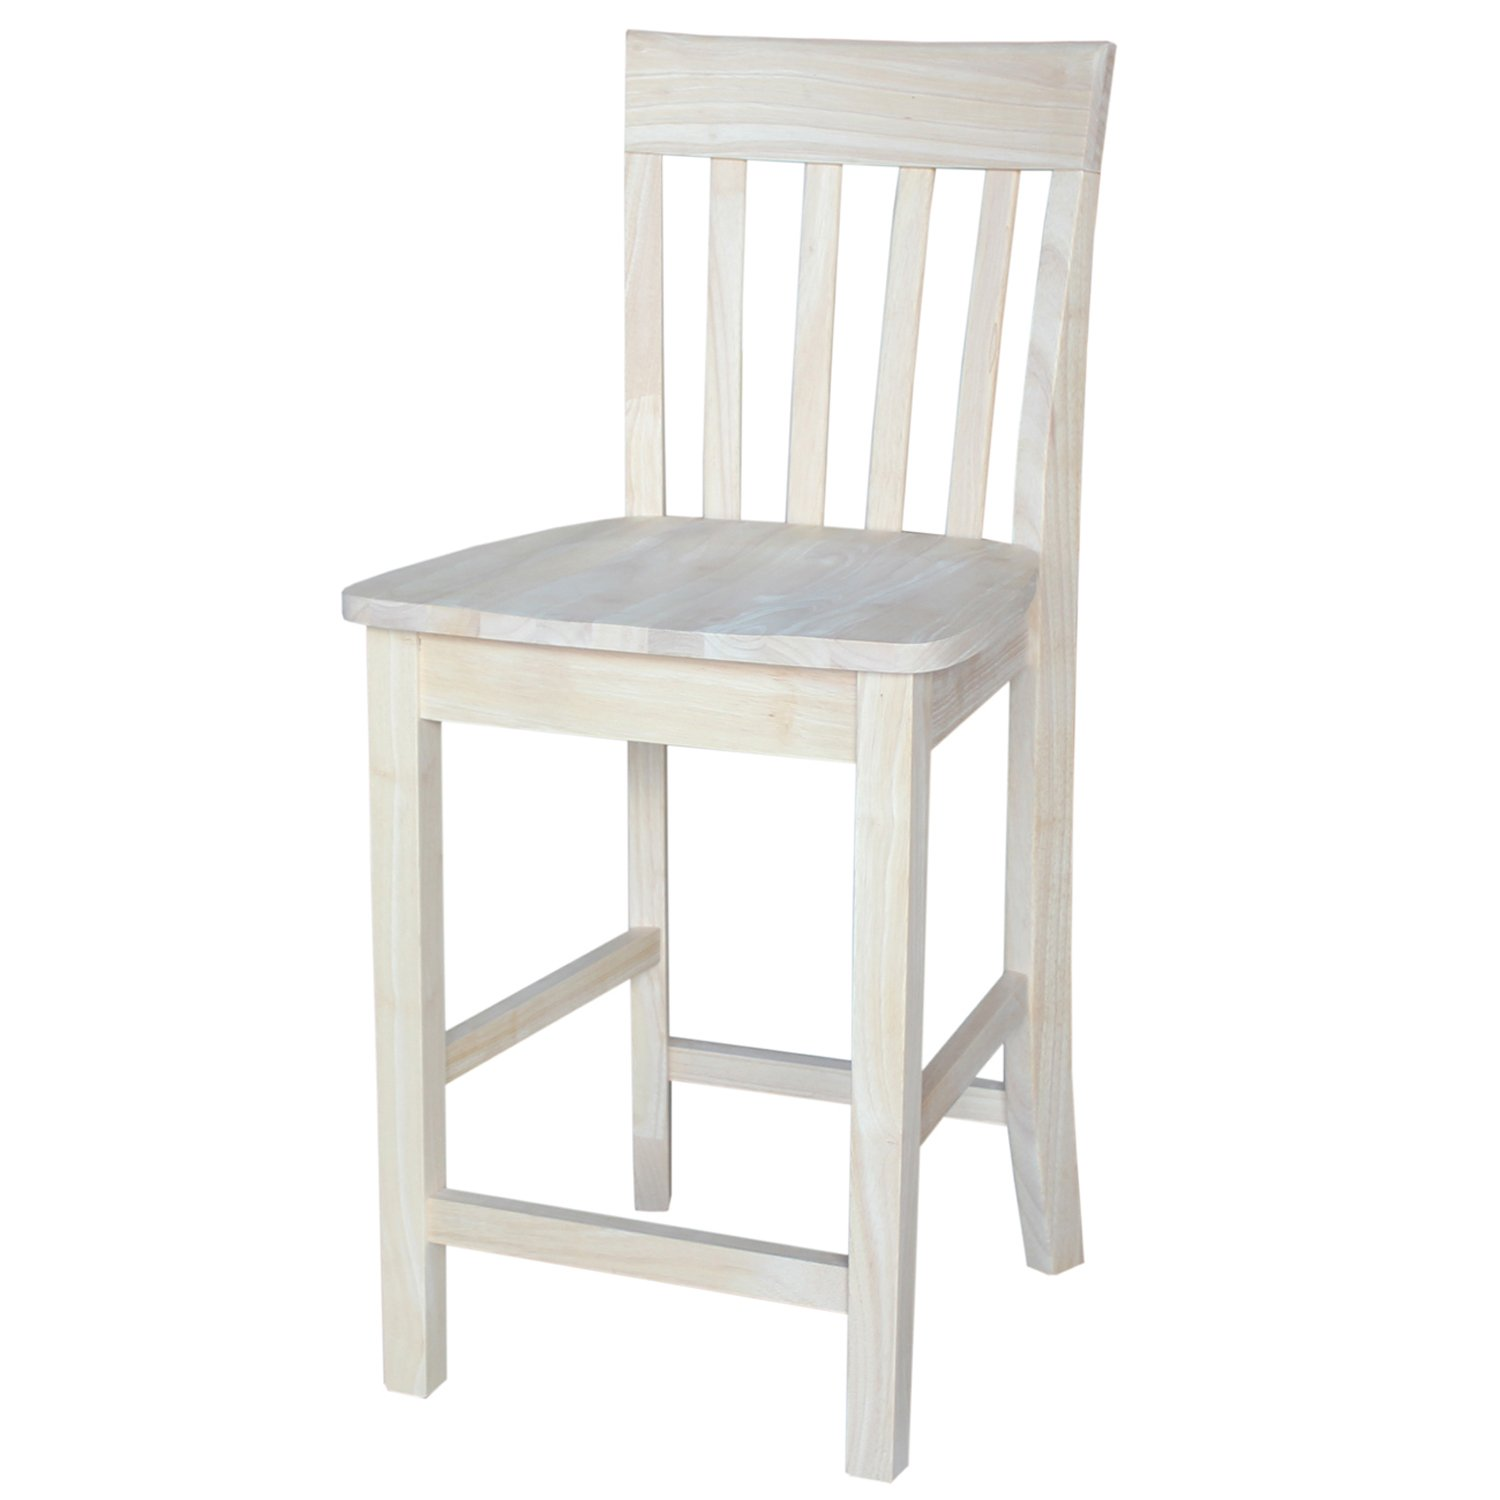 International Concepts S-3012 Slat Back Stool, 24-Inch SH, Unfinished